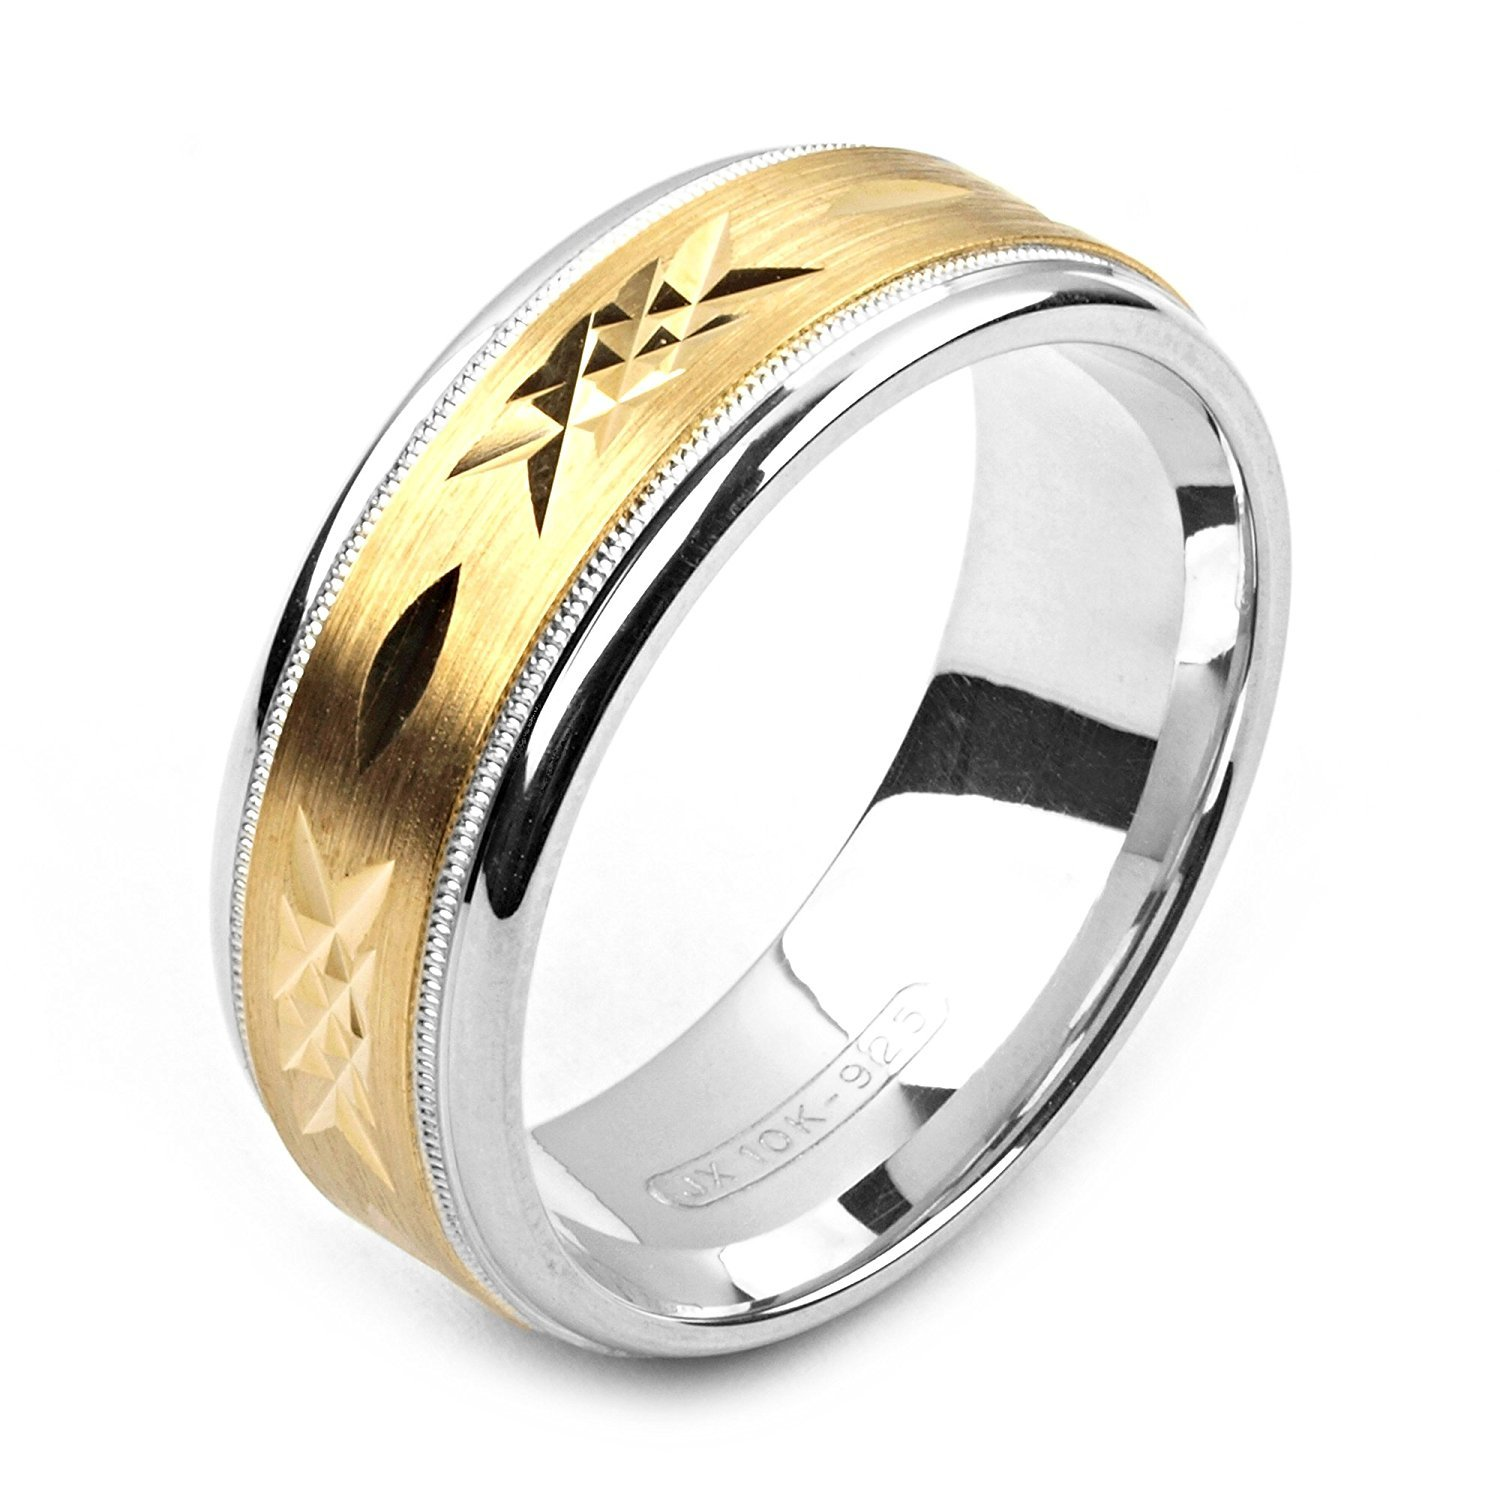 Alain Raphael 2 Tone Sterling Silver and 10k Yellow Gold 8 Millimeters Wide Wedding Band Ring by Alain Raphael